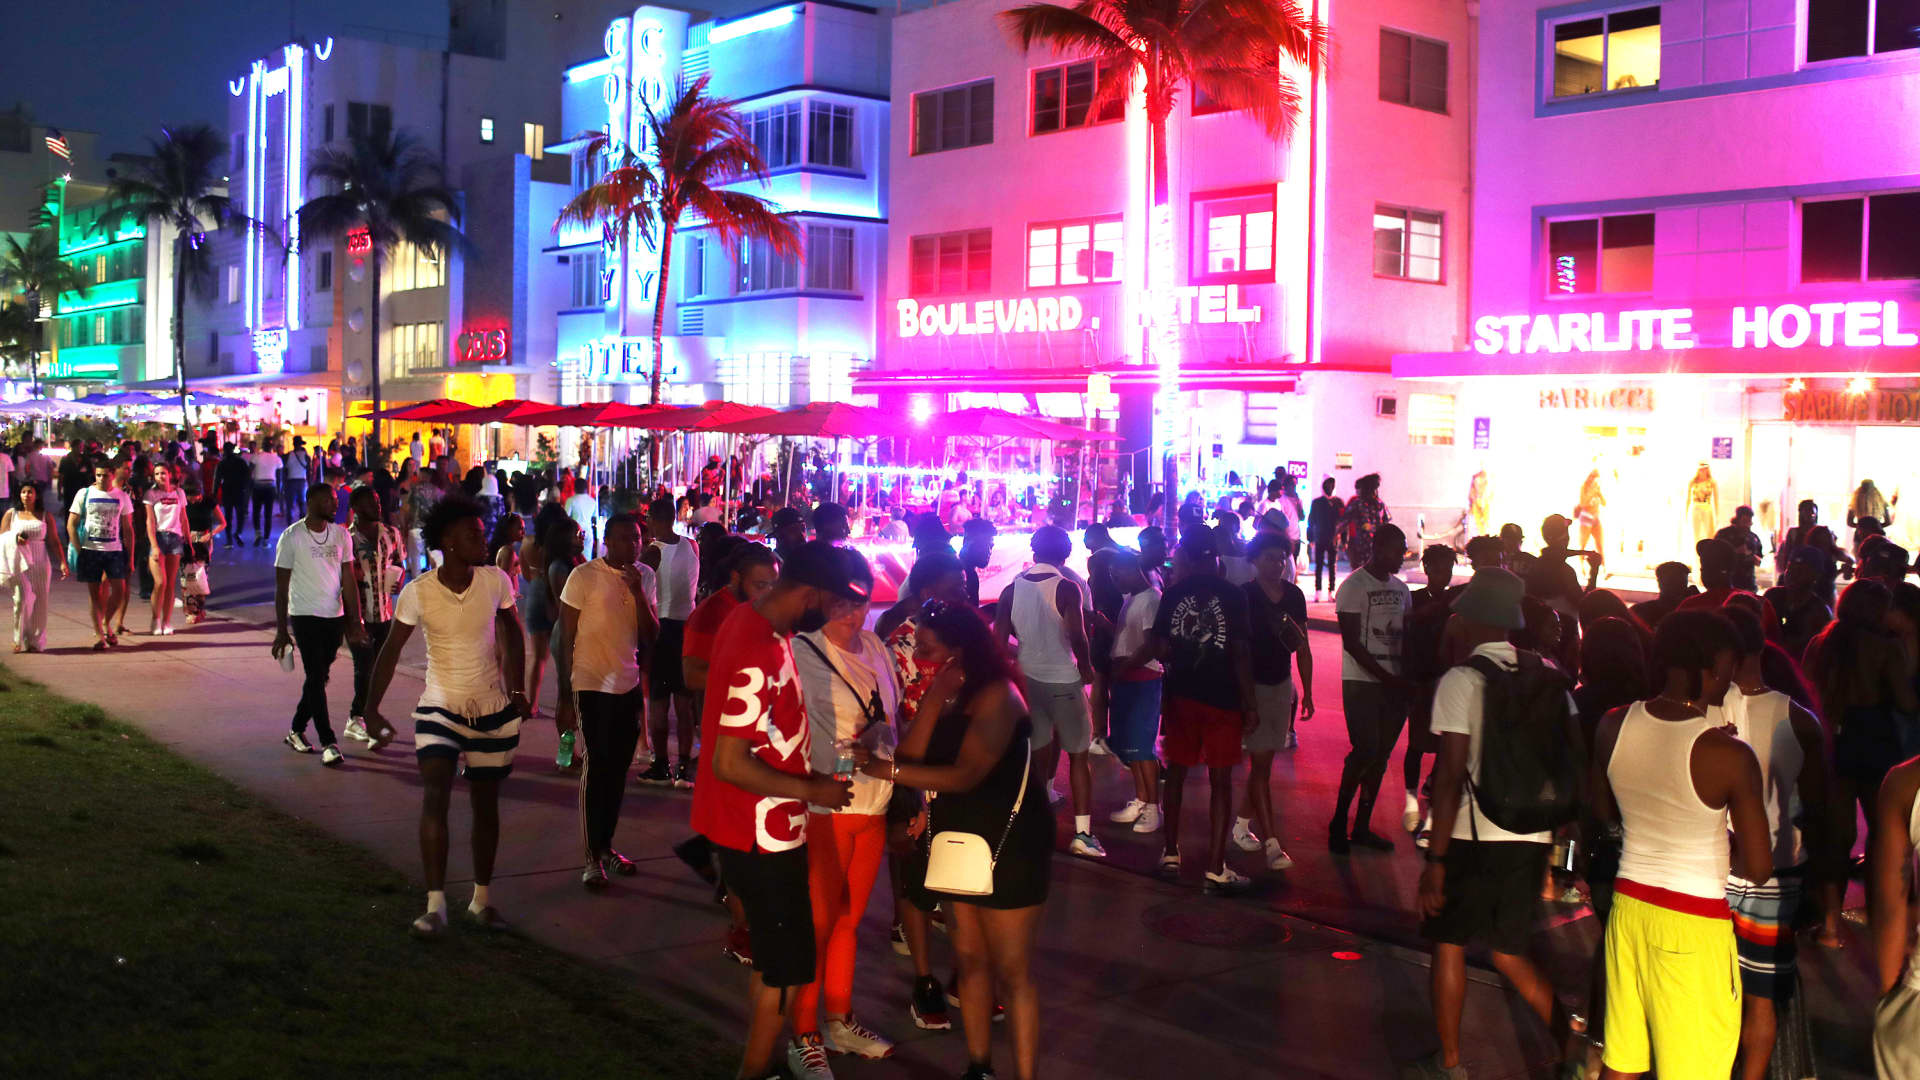 People enjoy themselves as they walk along Ocean Drive on March 18, 2021 in Miami Beach, Florida. College students have arrived in the South Florida area for the annual spring break ritual. City officials are concerned with large spring break crowds as the coronavirus pandemic continues.